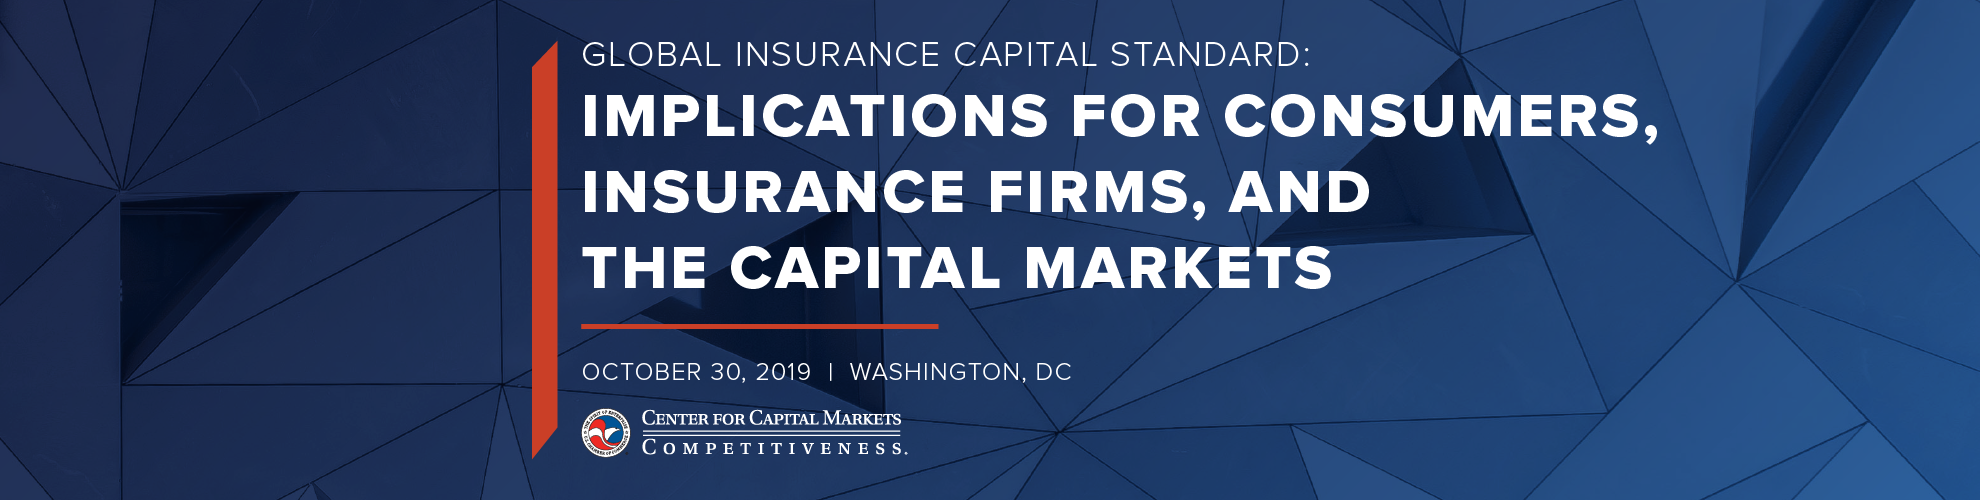 Global Insurance Capital Standard: Implications for Consumers, Insurance Firms, and the Capital Markets